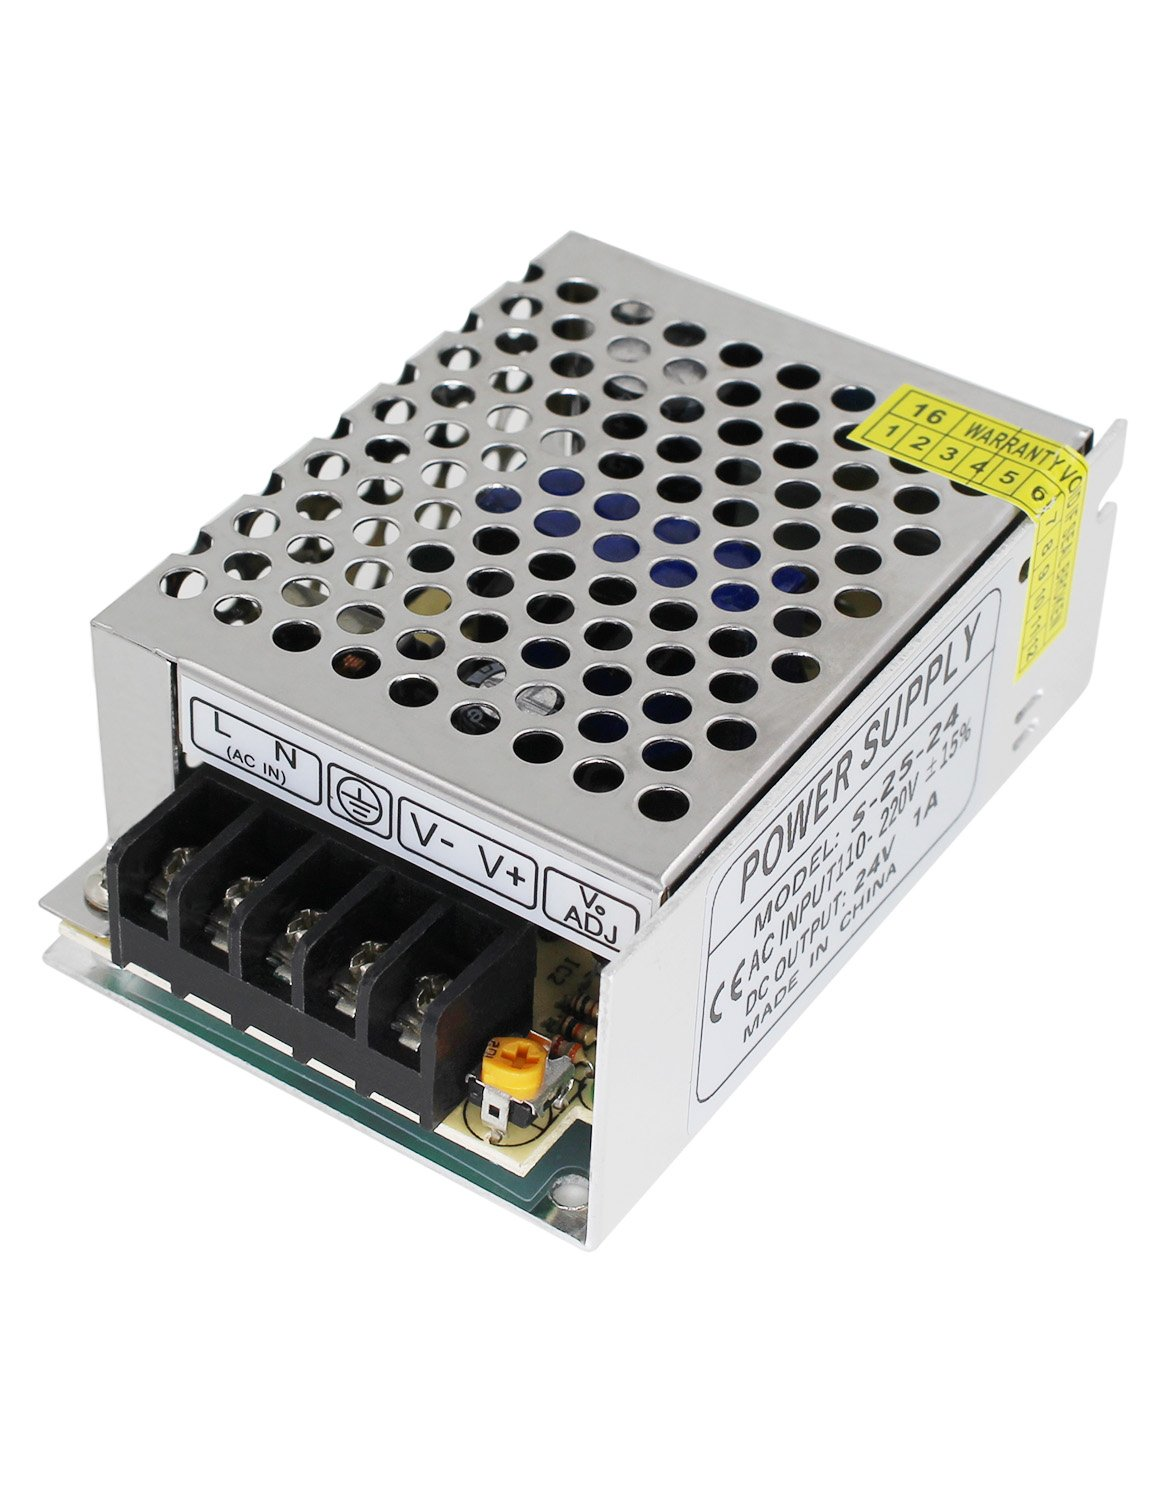 110V/220V AC to DC 24V Switch Power Supply Driver Power Transformer for CCTV Camera/Security System/LED Strip Light/Radio/Computer Project